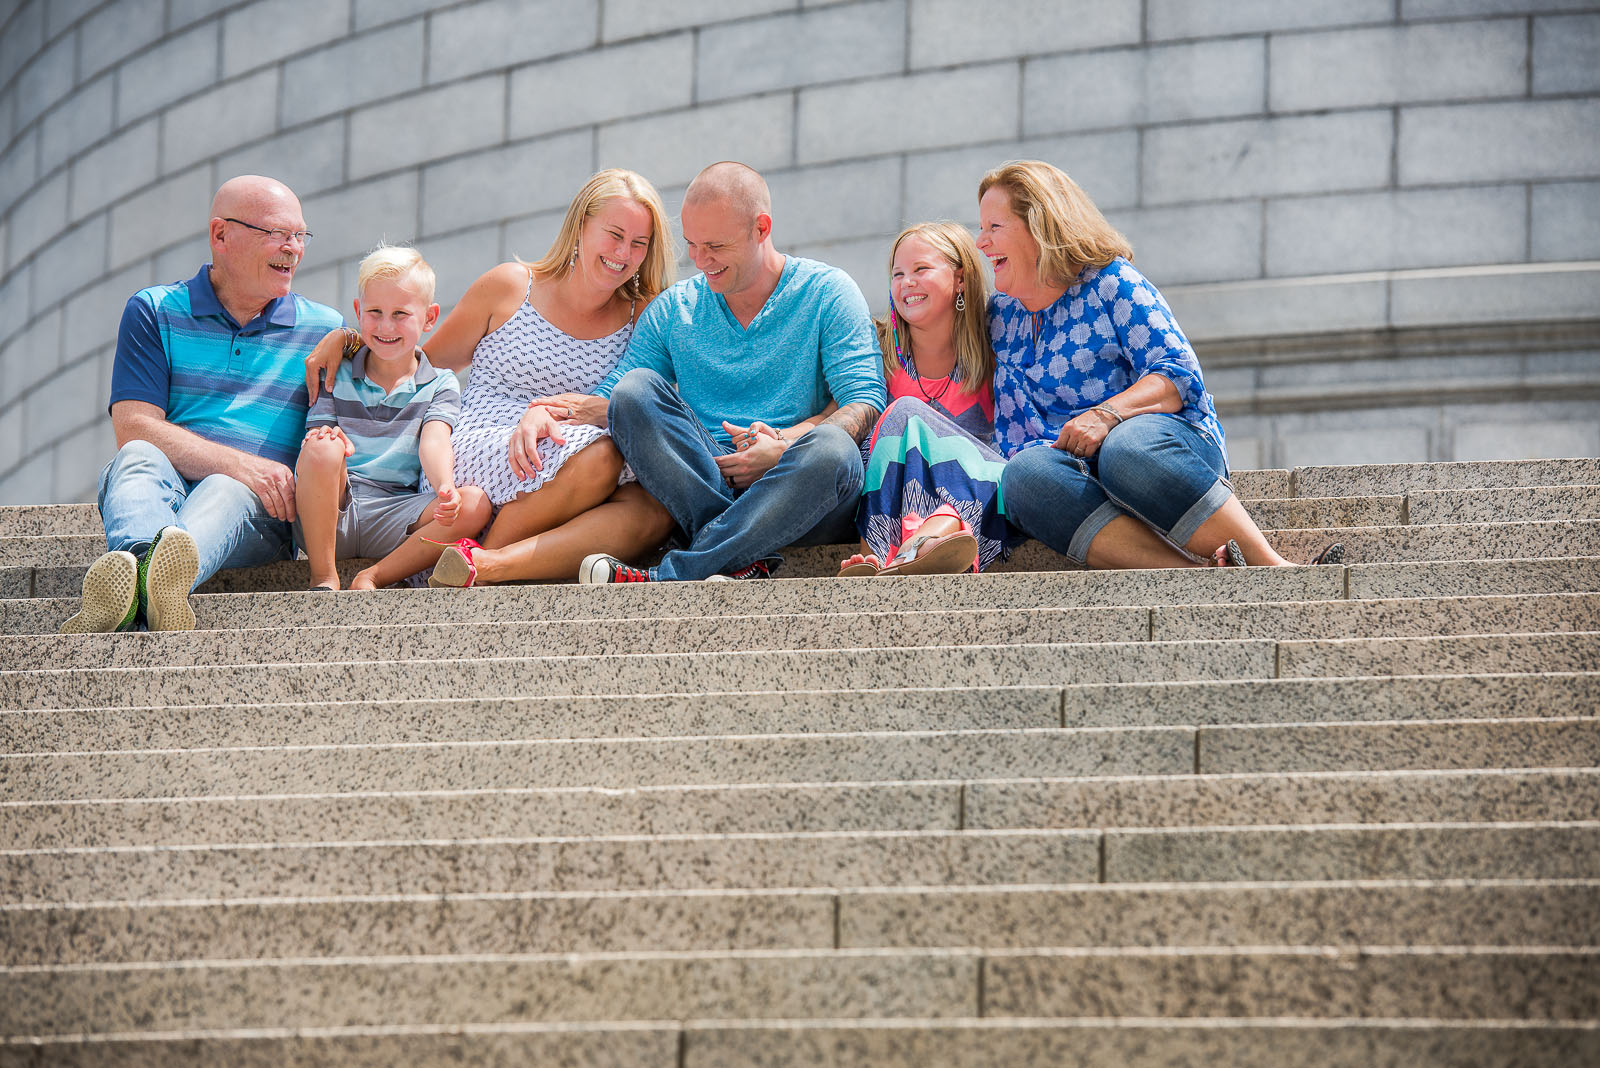 eric_and_christy_photographers_blog_family_kerriaaron-9